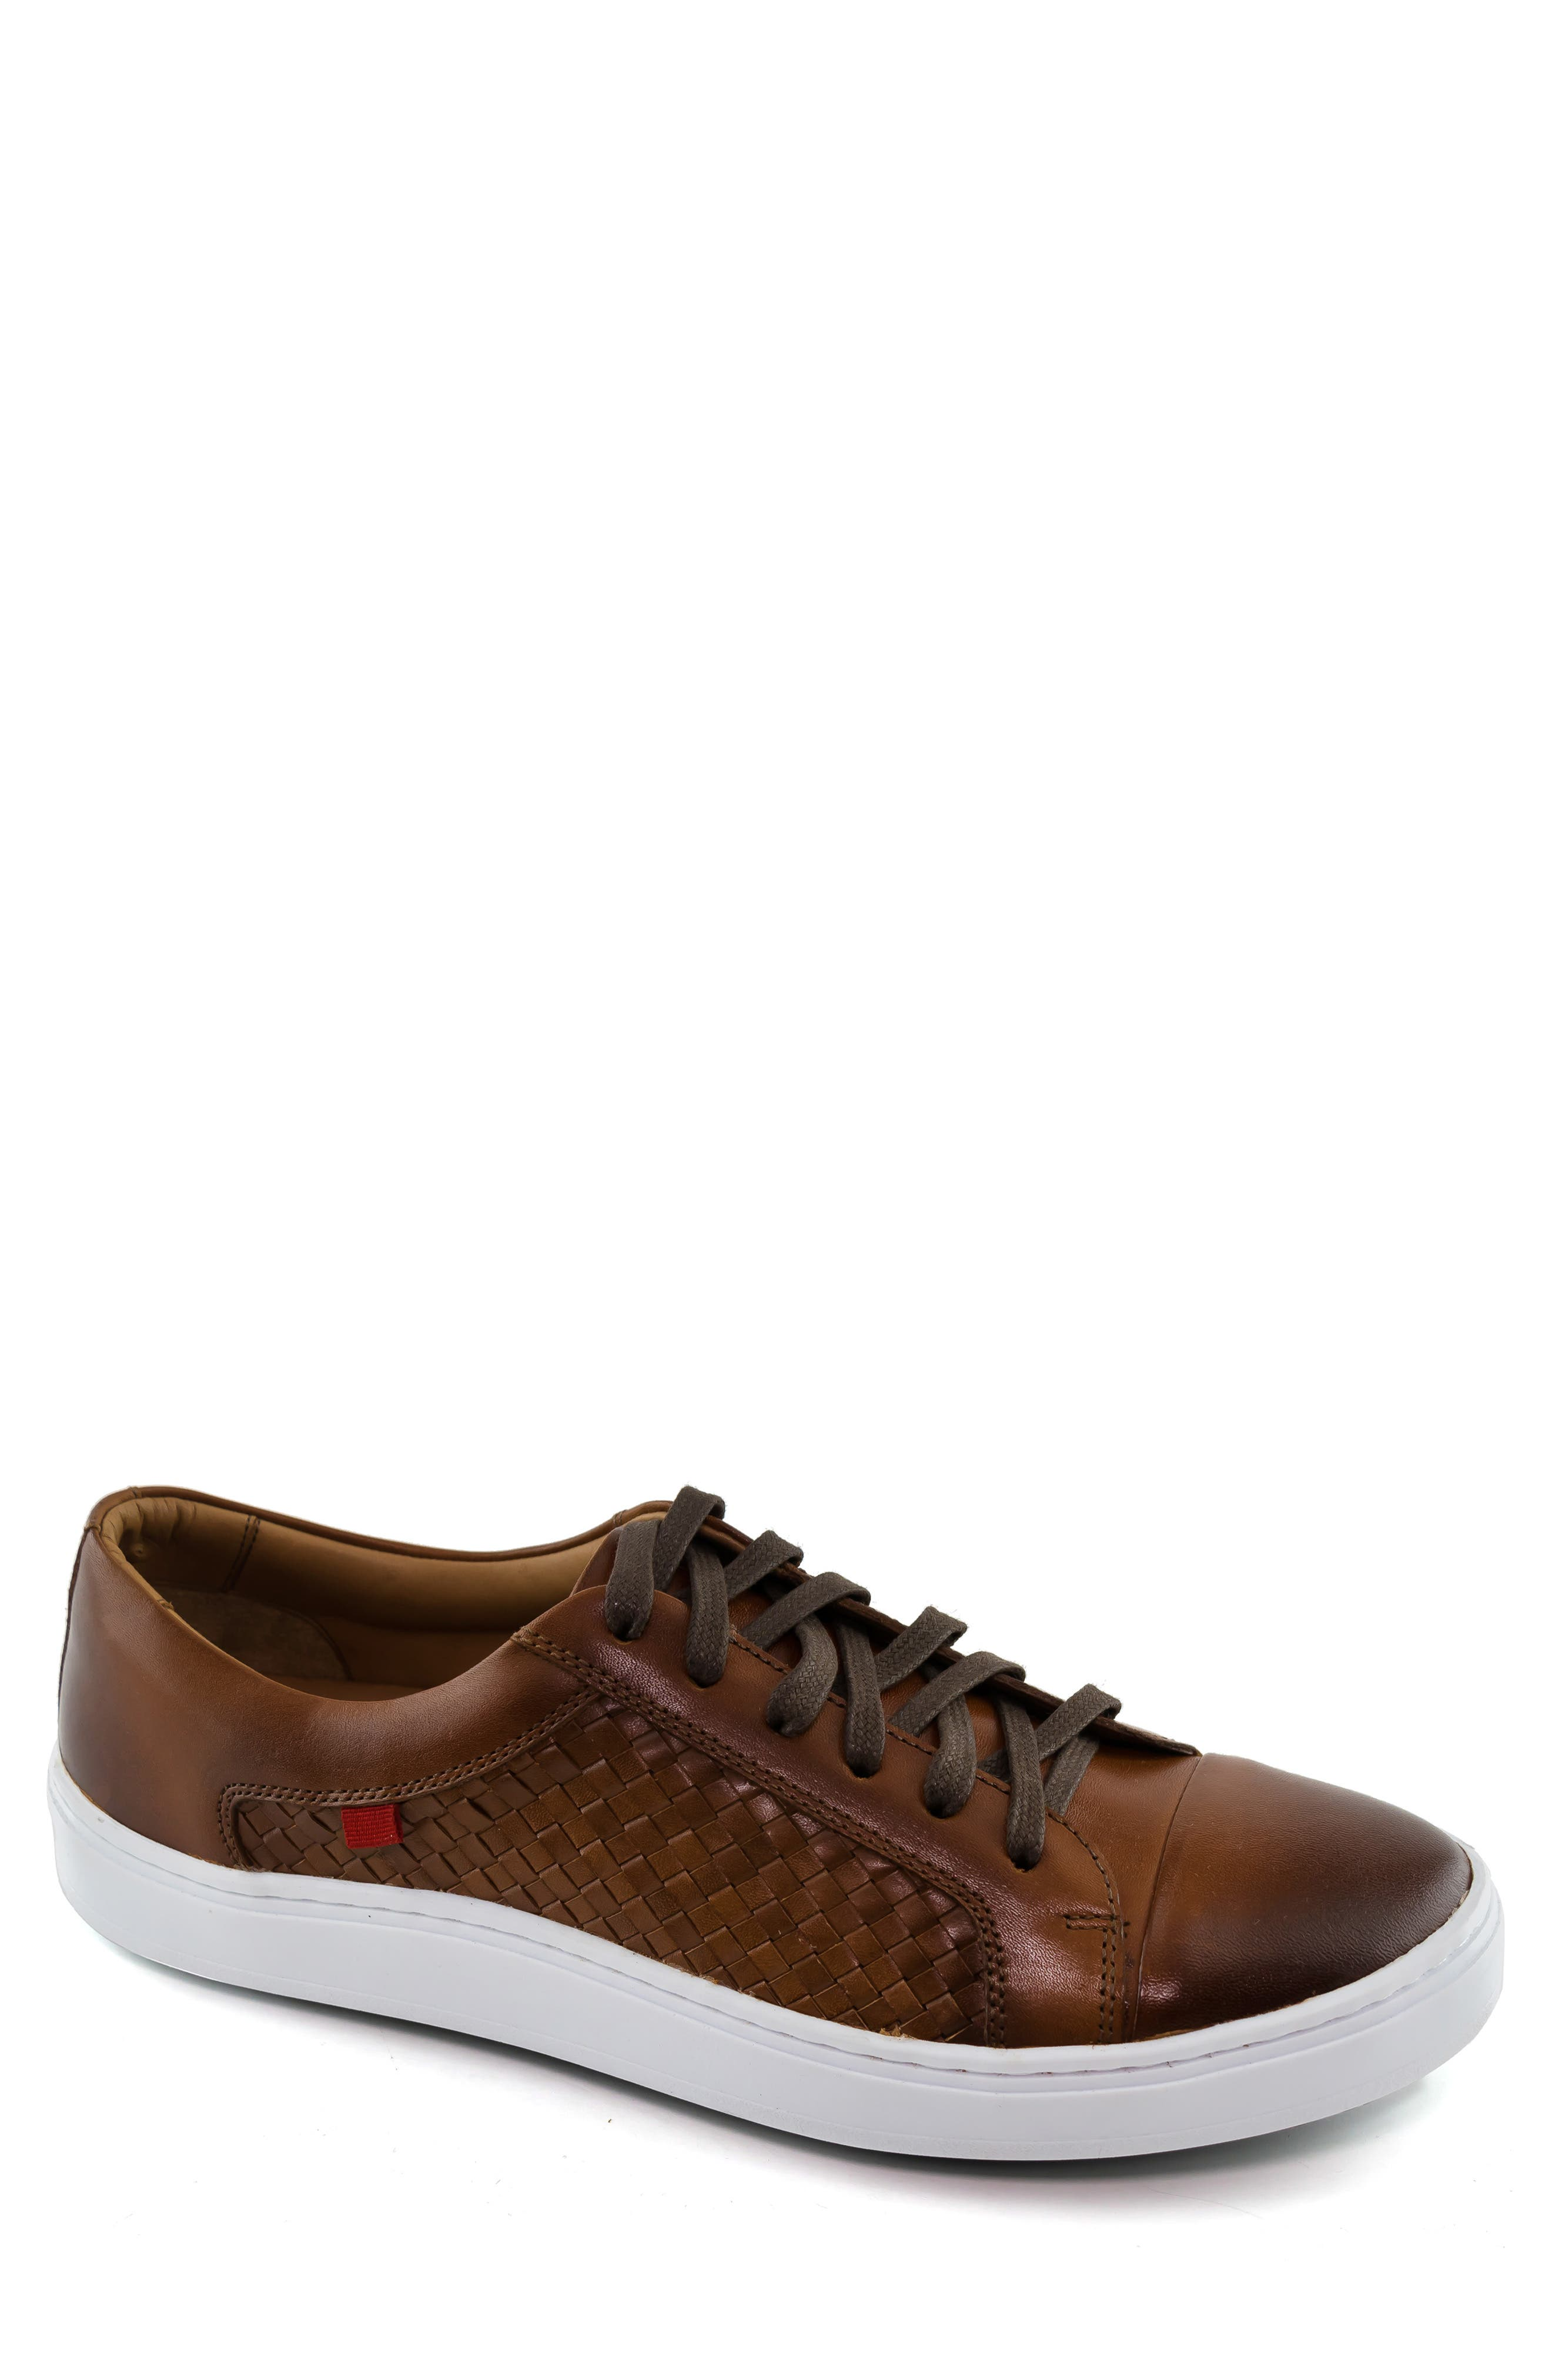 Woven nappa calfskin adds eye-catching texture to a handcrafted sneaker with smart gel cushioning and a flexible traction sole. Style Name: Marc Joseph New York King Street Sneaker (Men). Style Number: 5850495. Available in stores.